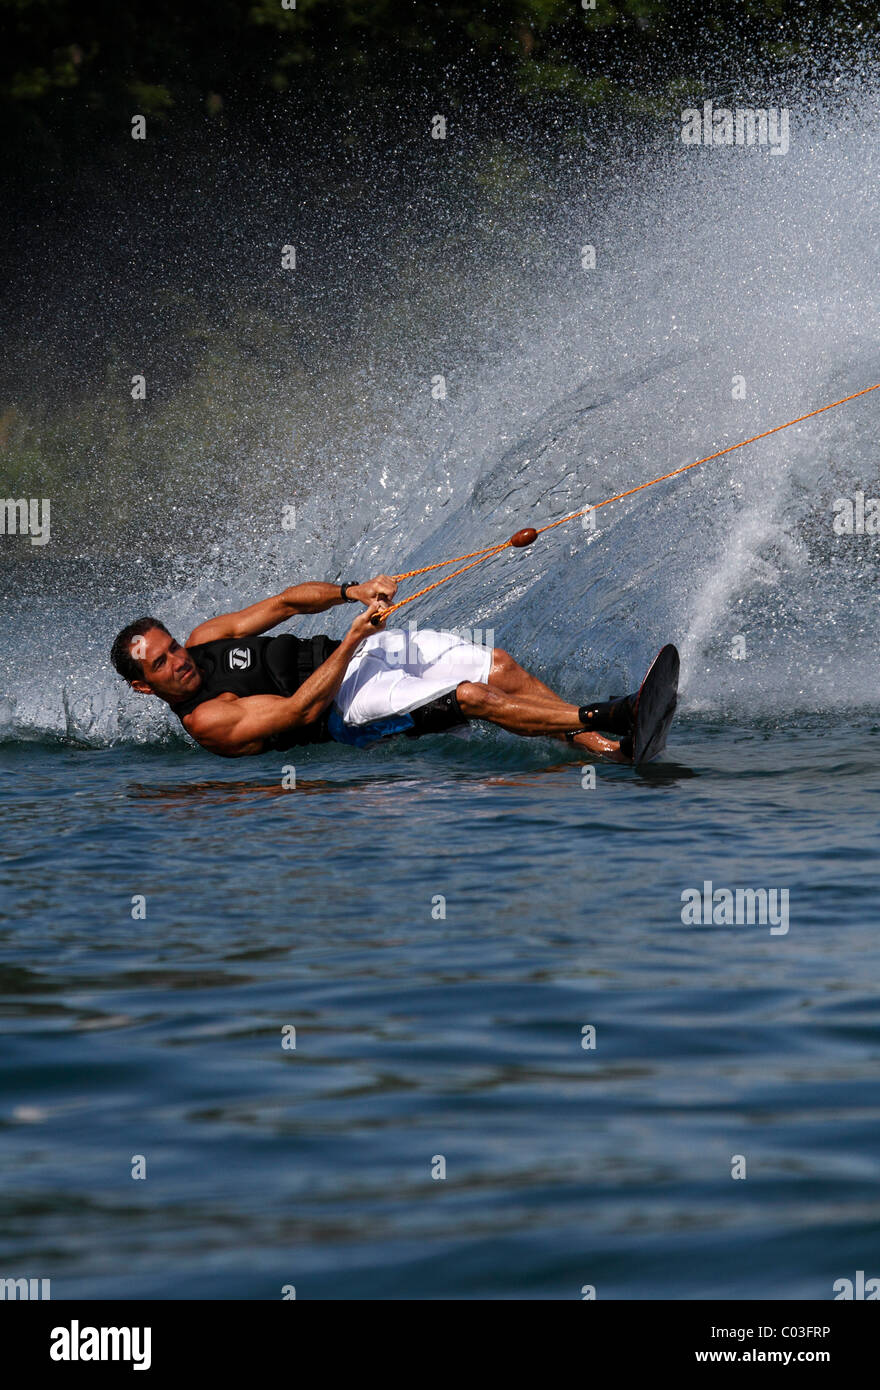 Surfer with wakeboard, Nordstrand lake near Erfurt, Thuringia, Germany, Europe - Stock Image